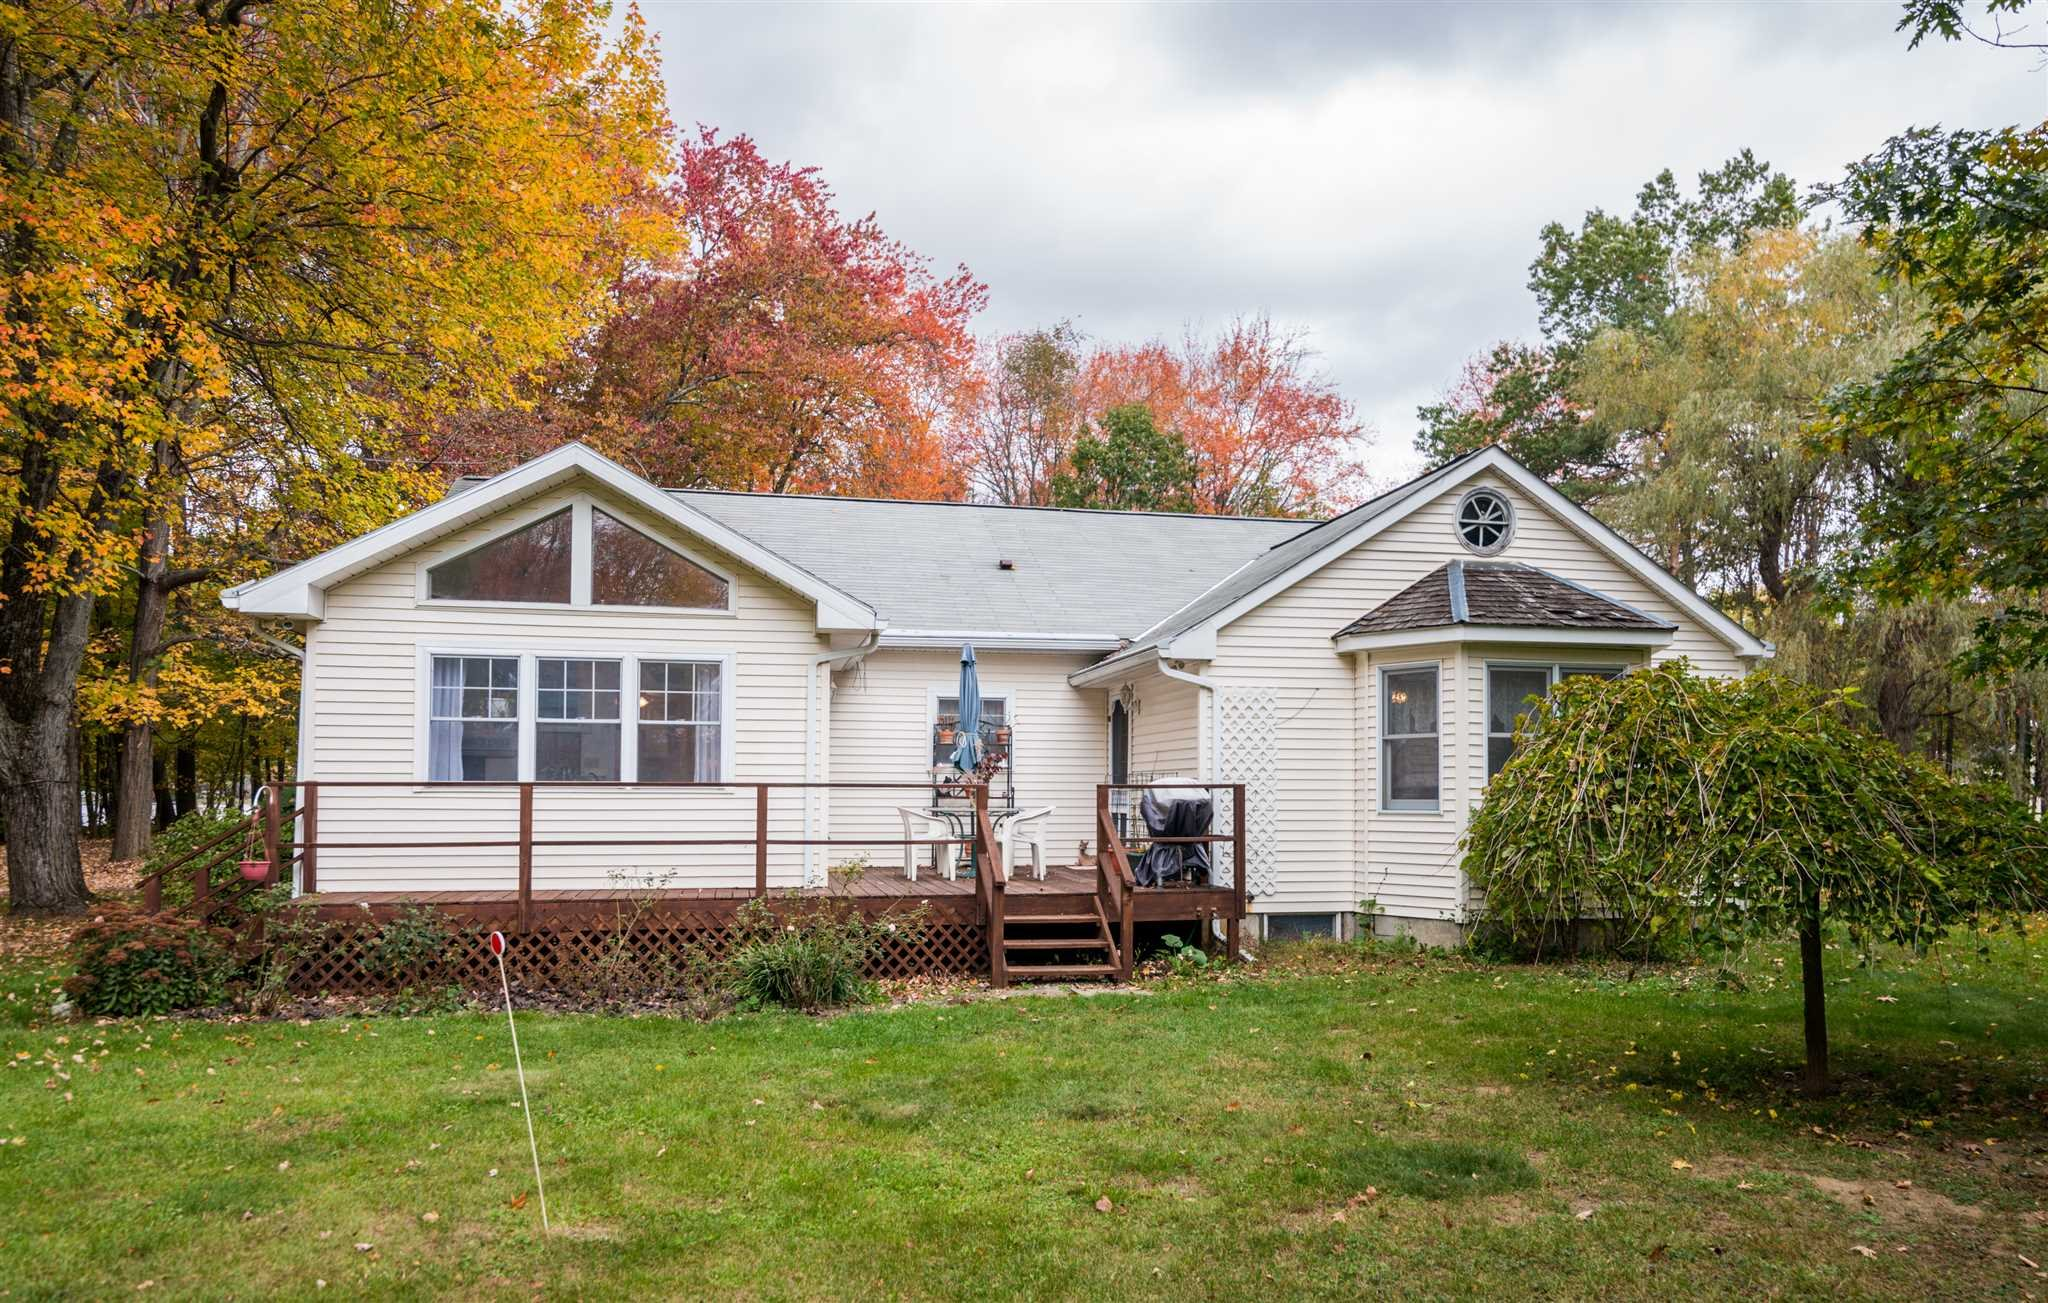 Single Family Home for Sale at 26 OLD ORCHARD 26 OLD ORCHARD Pine Plains, New York 12567 United States